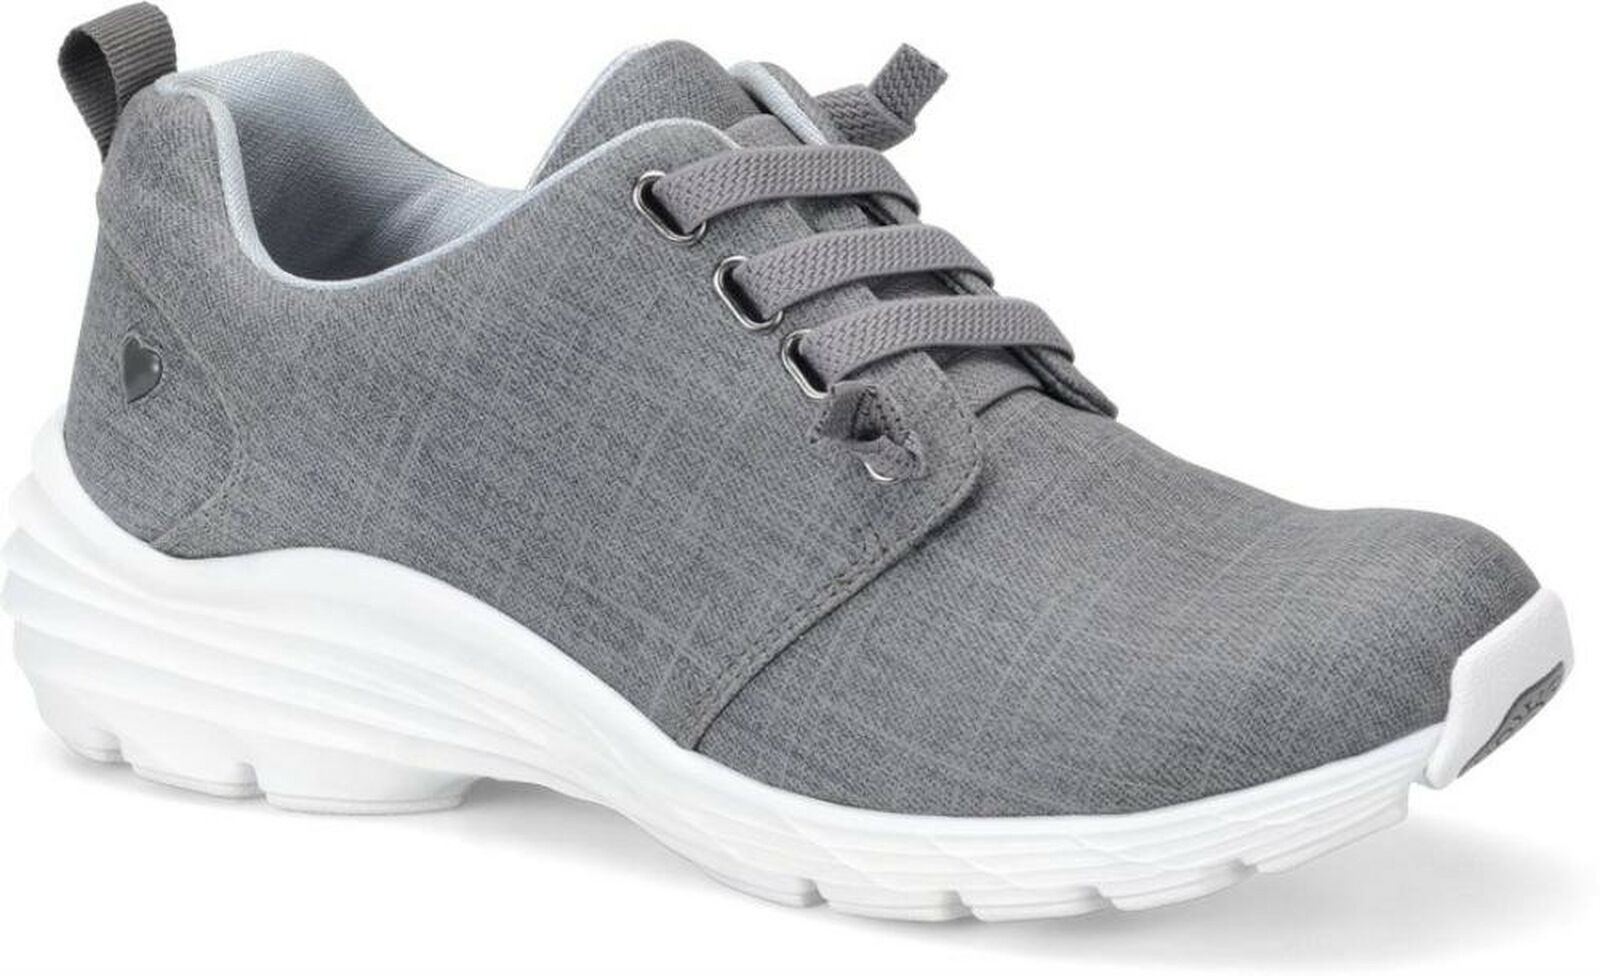 Nurse Mates - Womens - Velocity Nursing shoes Grey Size 7